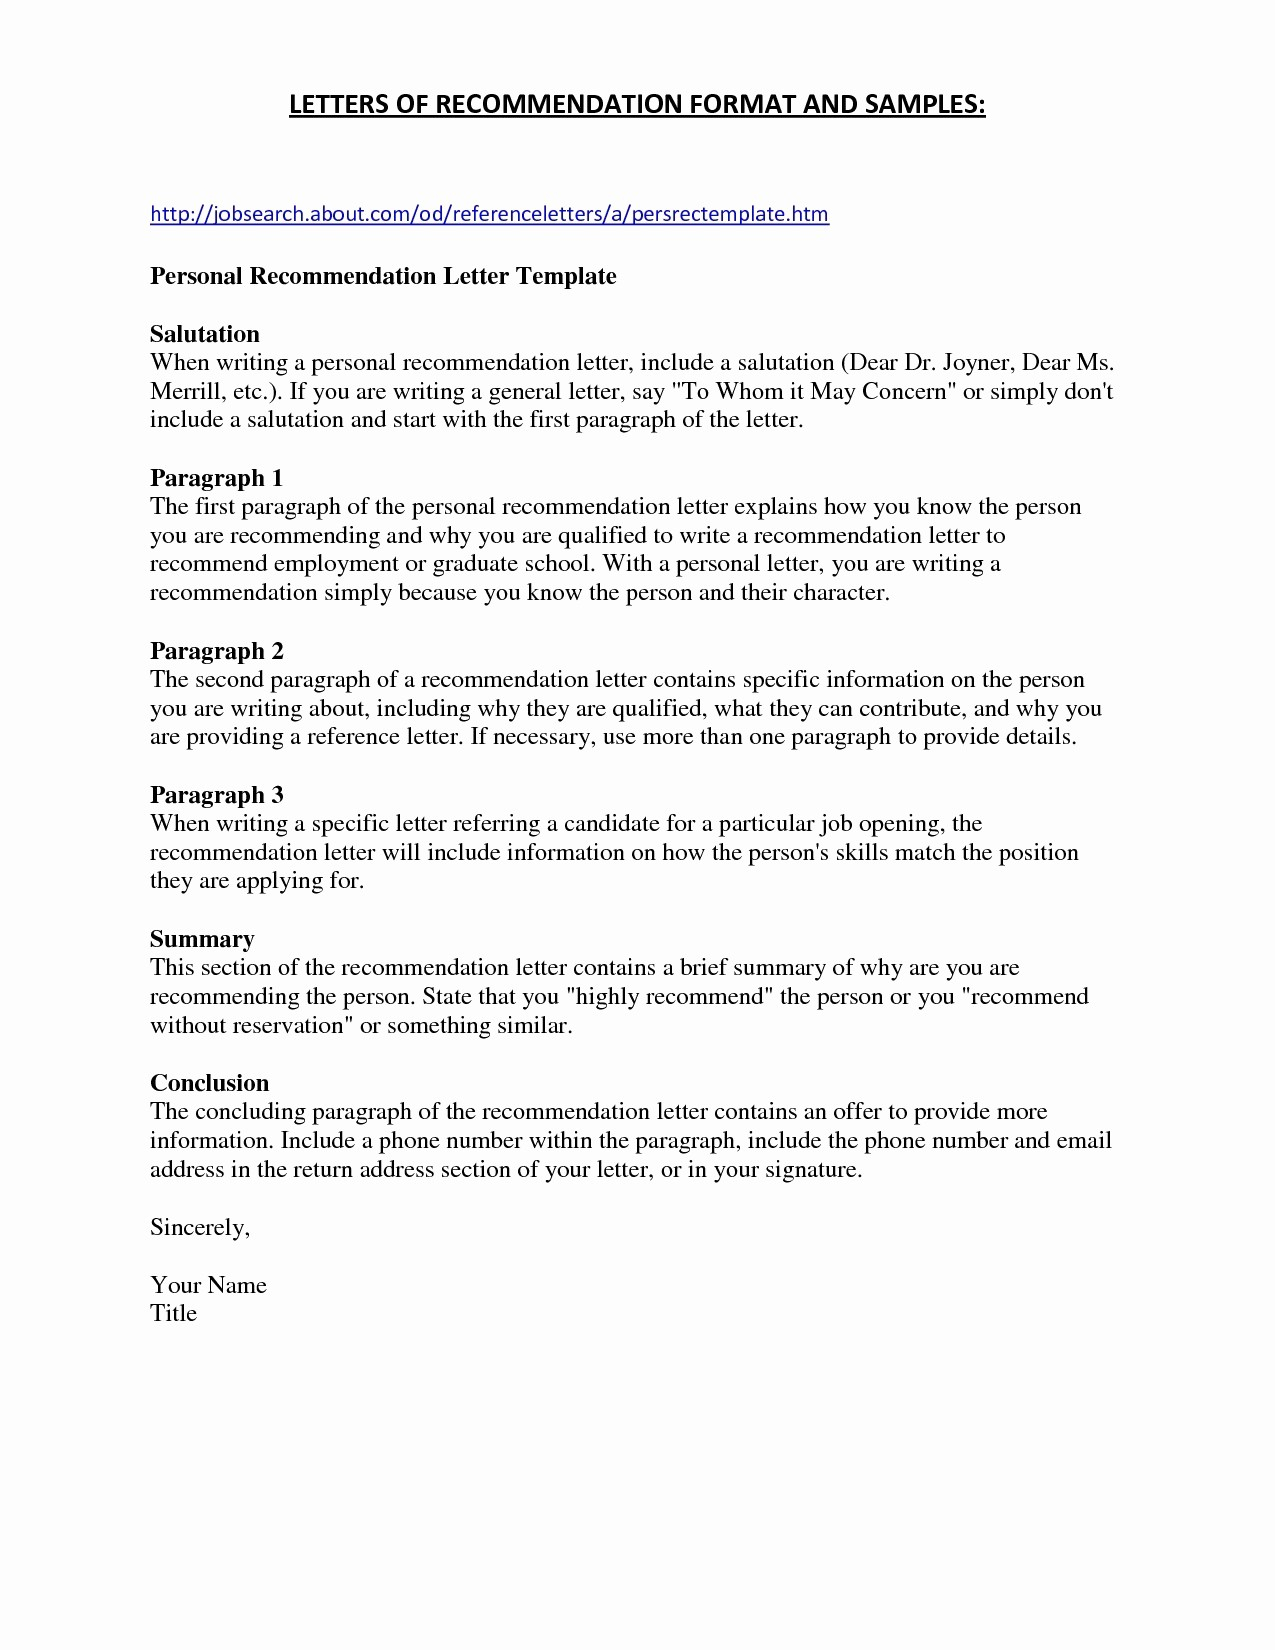 Case Manager Cover Letter Template - Cover Letter for Case Management Position Lovely Cover Letter for